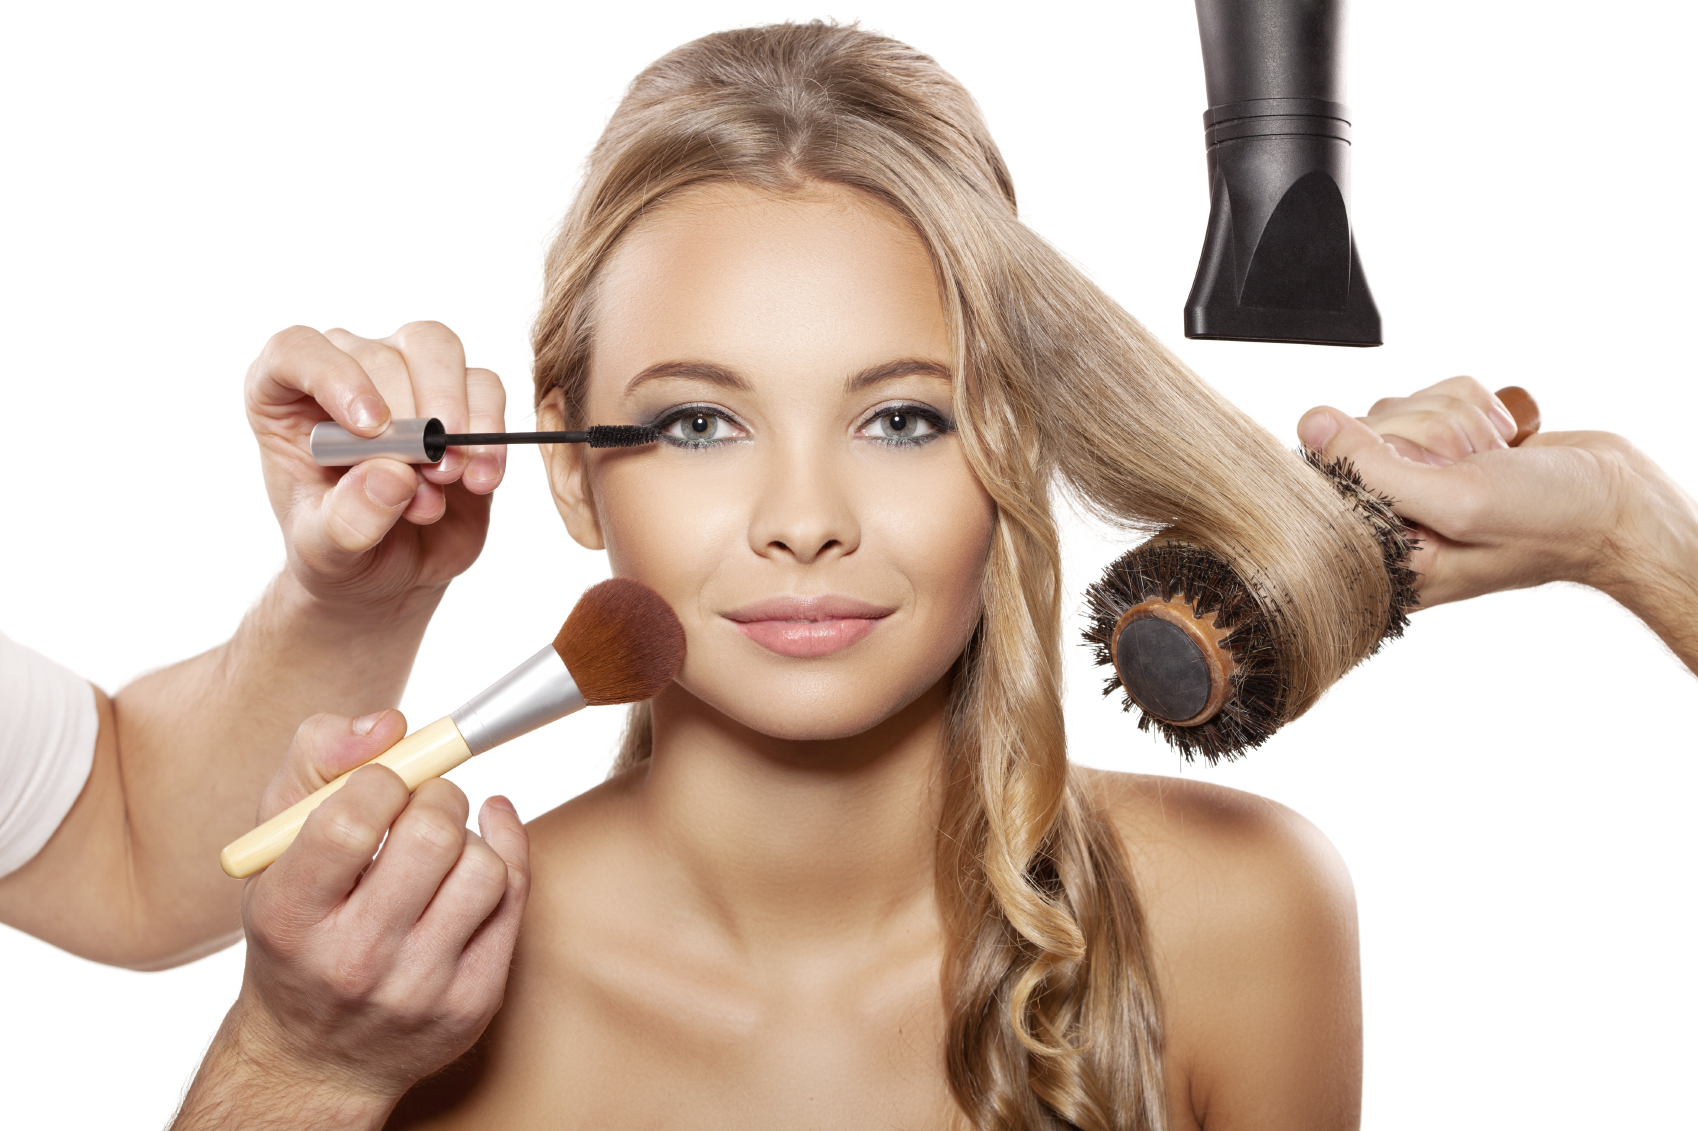 Hair & make-up services